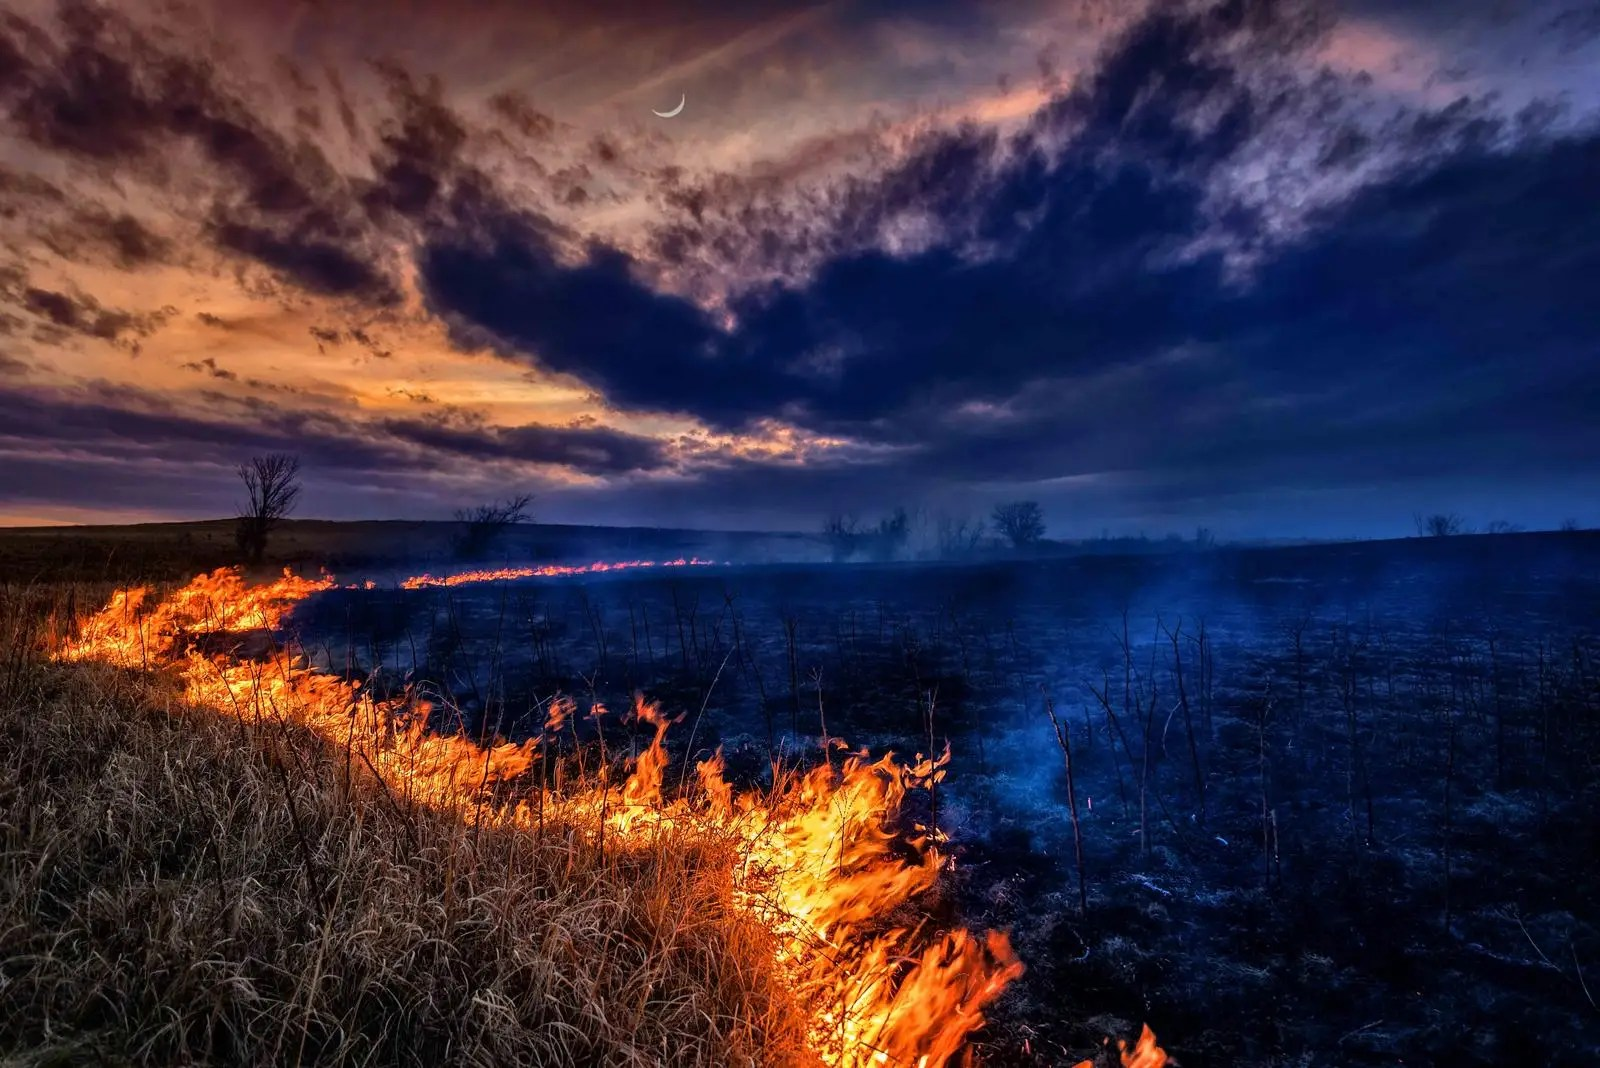 This shot of a controlled burn in Shawnee County, Kansas, was one of the most amazing photos we spotted in the Nature Conservancy's photo contest.